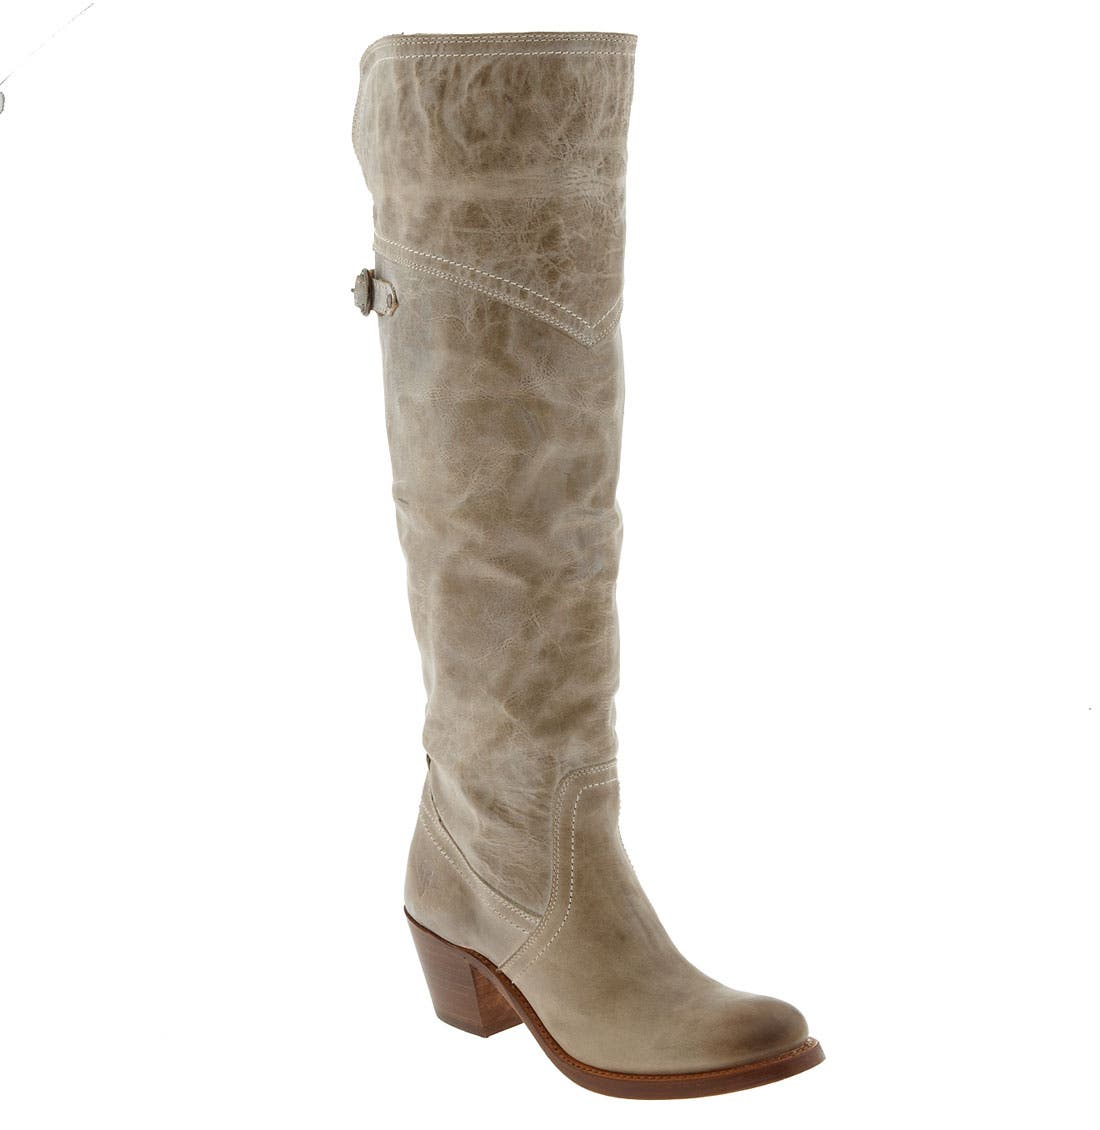 Alternate Image 1 Selected - Frye 'Jane' Tall Boot